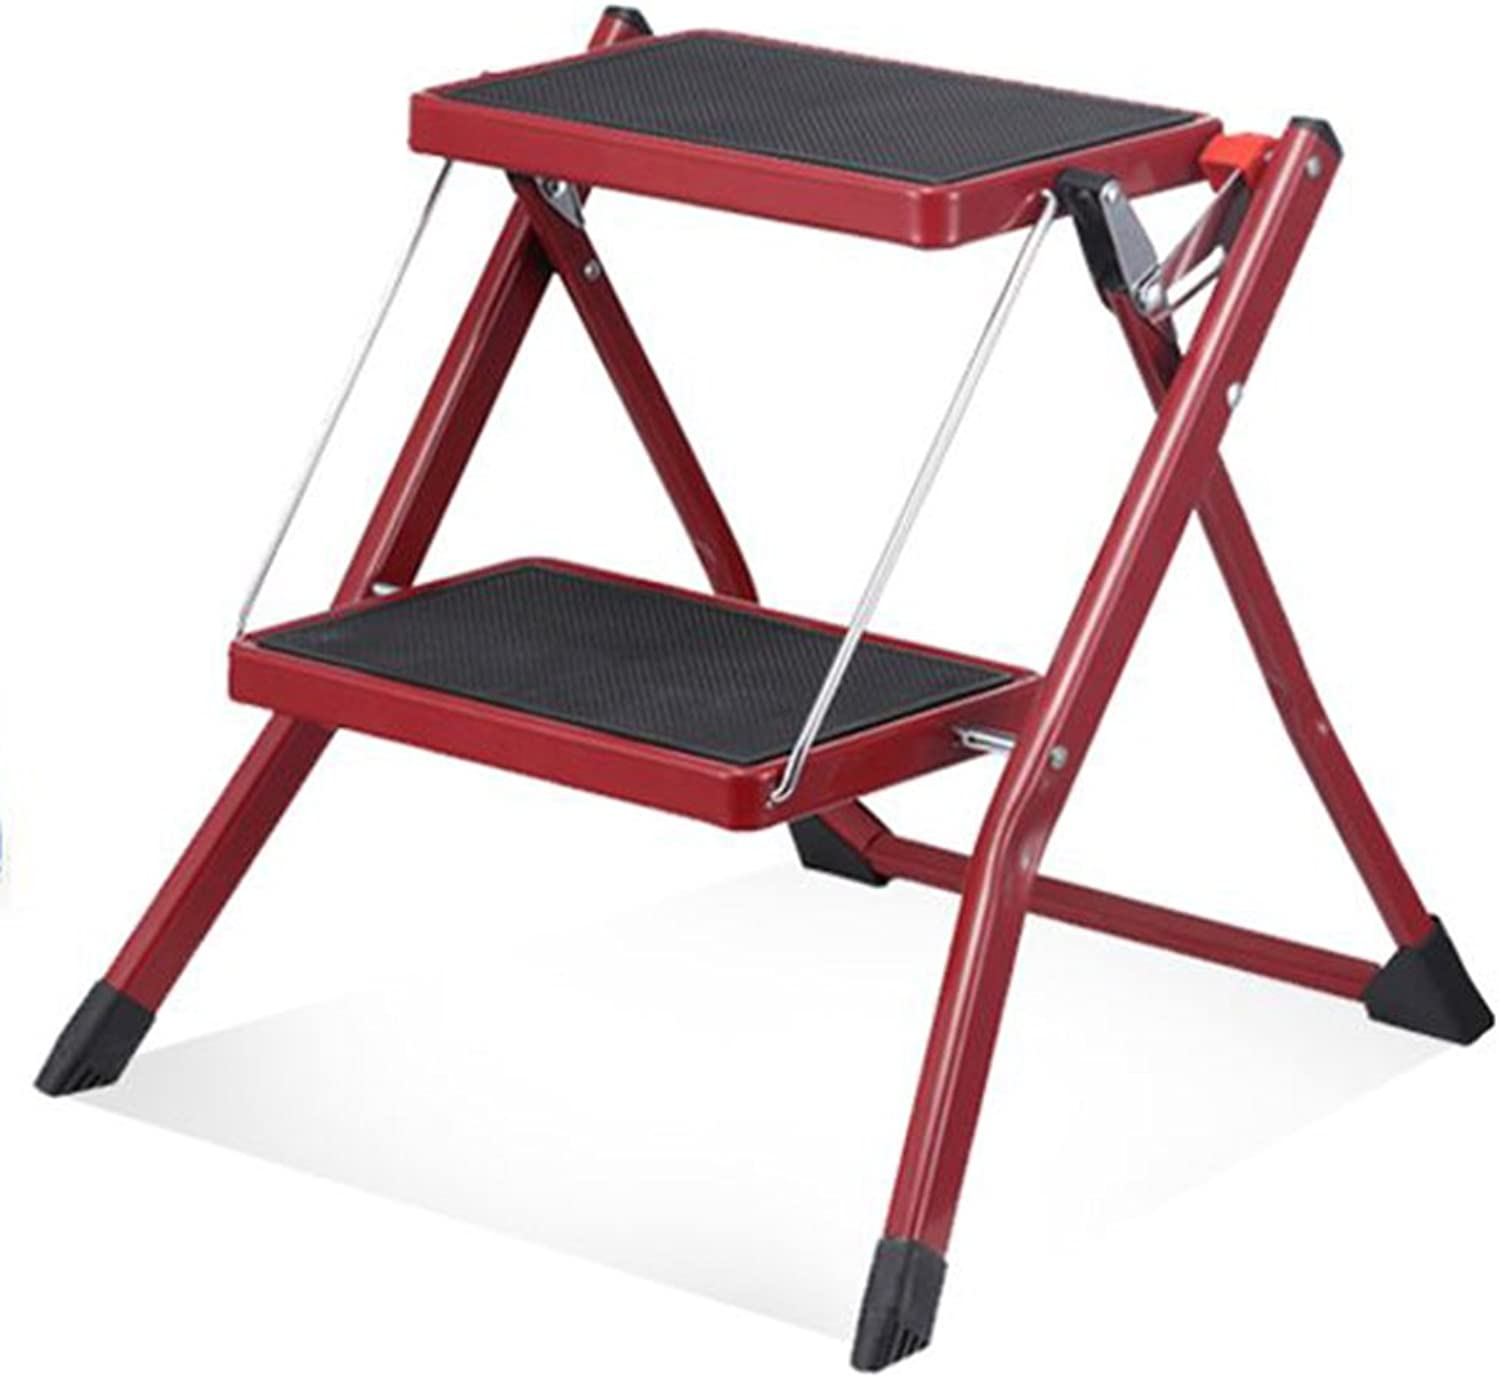 HAIPENG Ladder Stool Footstool Small Seat Foldable Step Ladder Herringbone Ladder Dual-use Utility 3 colors Available 49x48.5x44.5cm ( color   1 -Red )